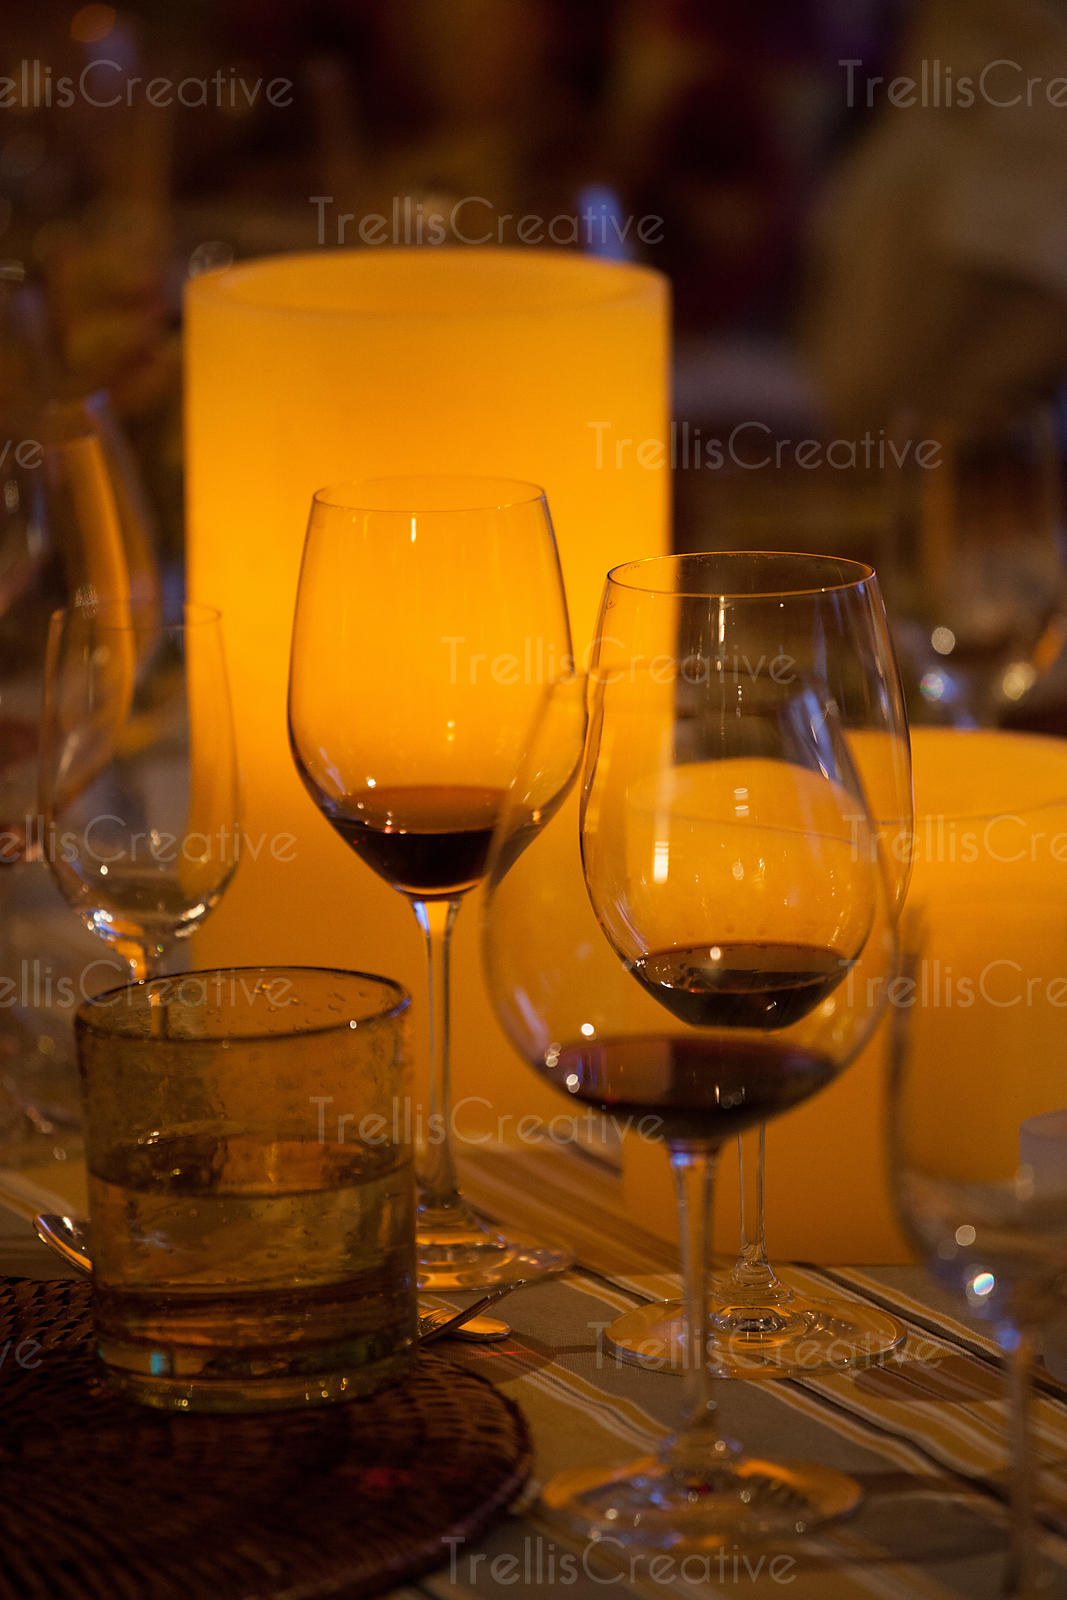 Glowing candlelit table with wine glasses